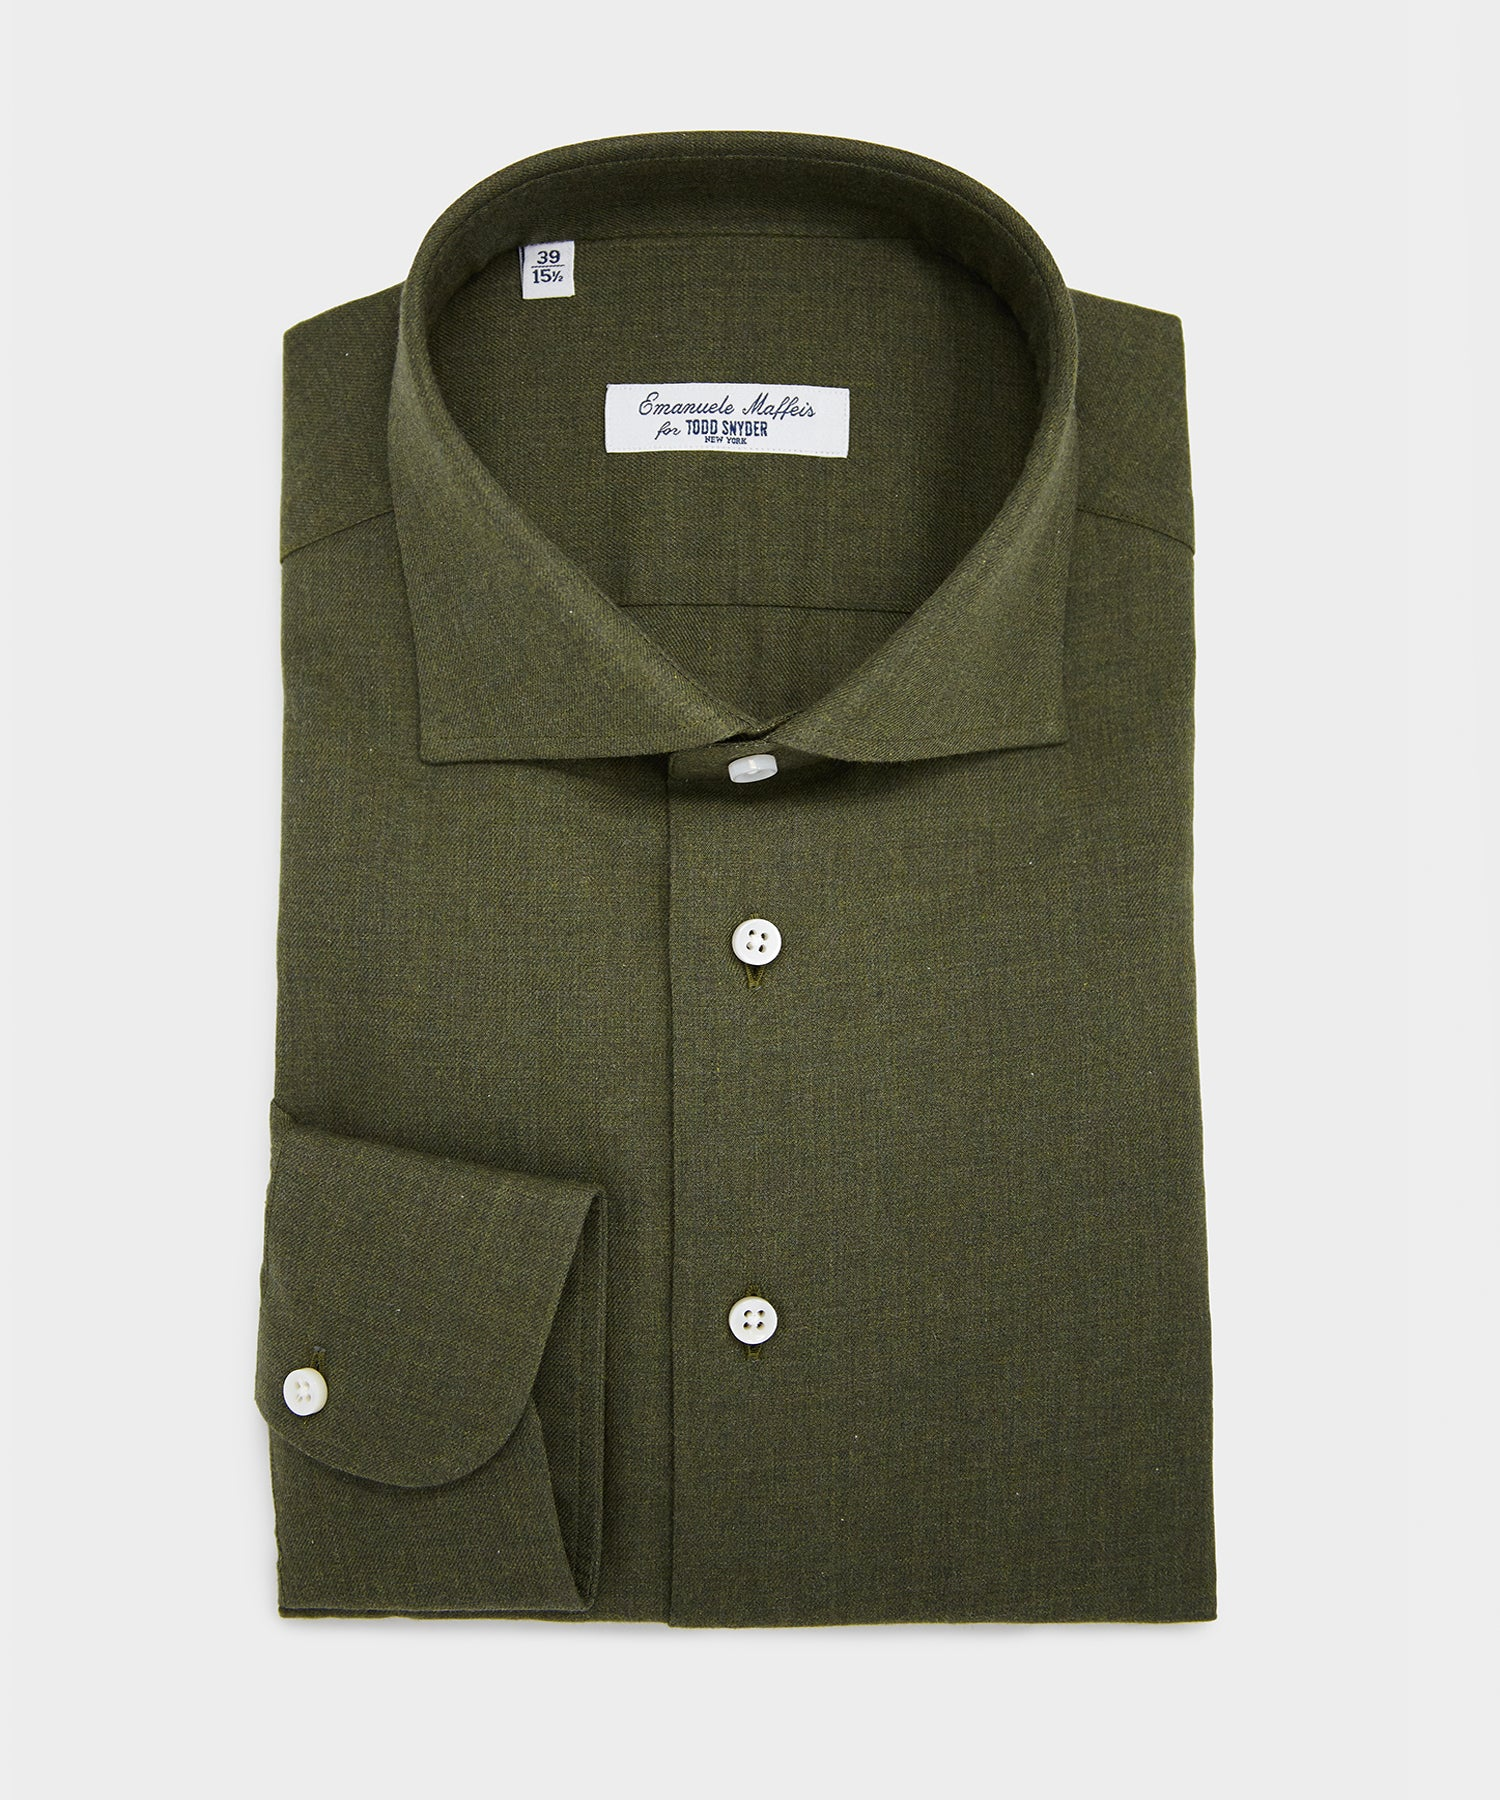 Emanuele Maffeis + Todd Snyder Solid Cotton Shirt In Olive